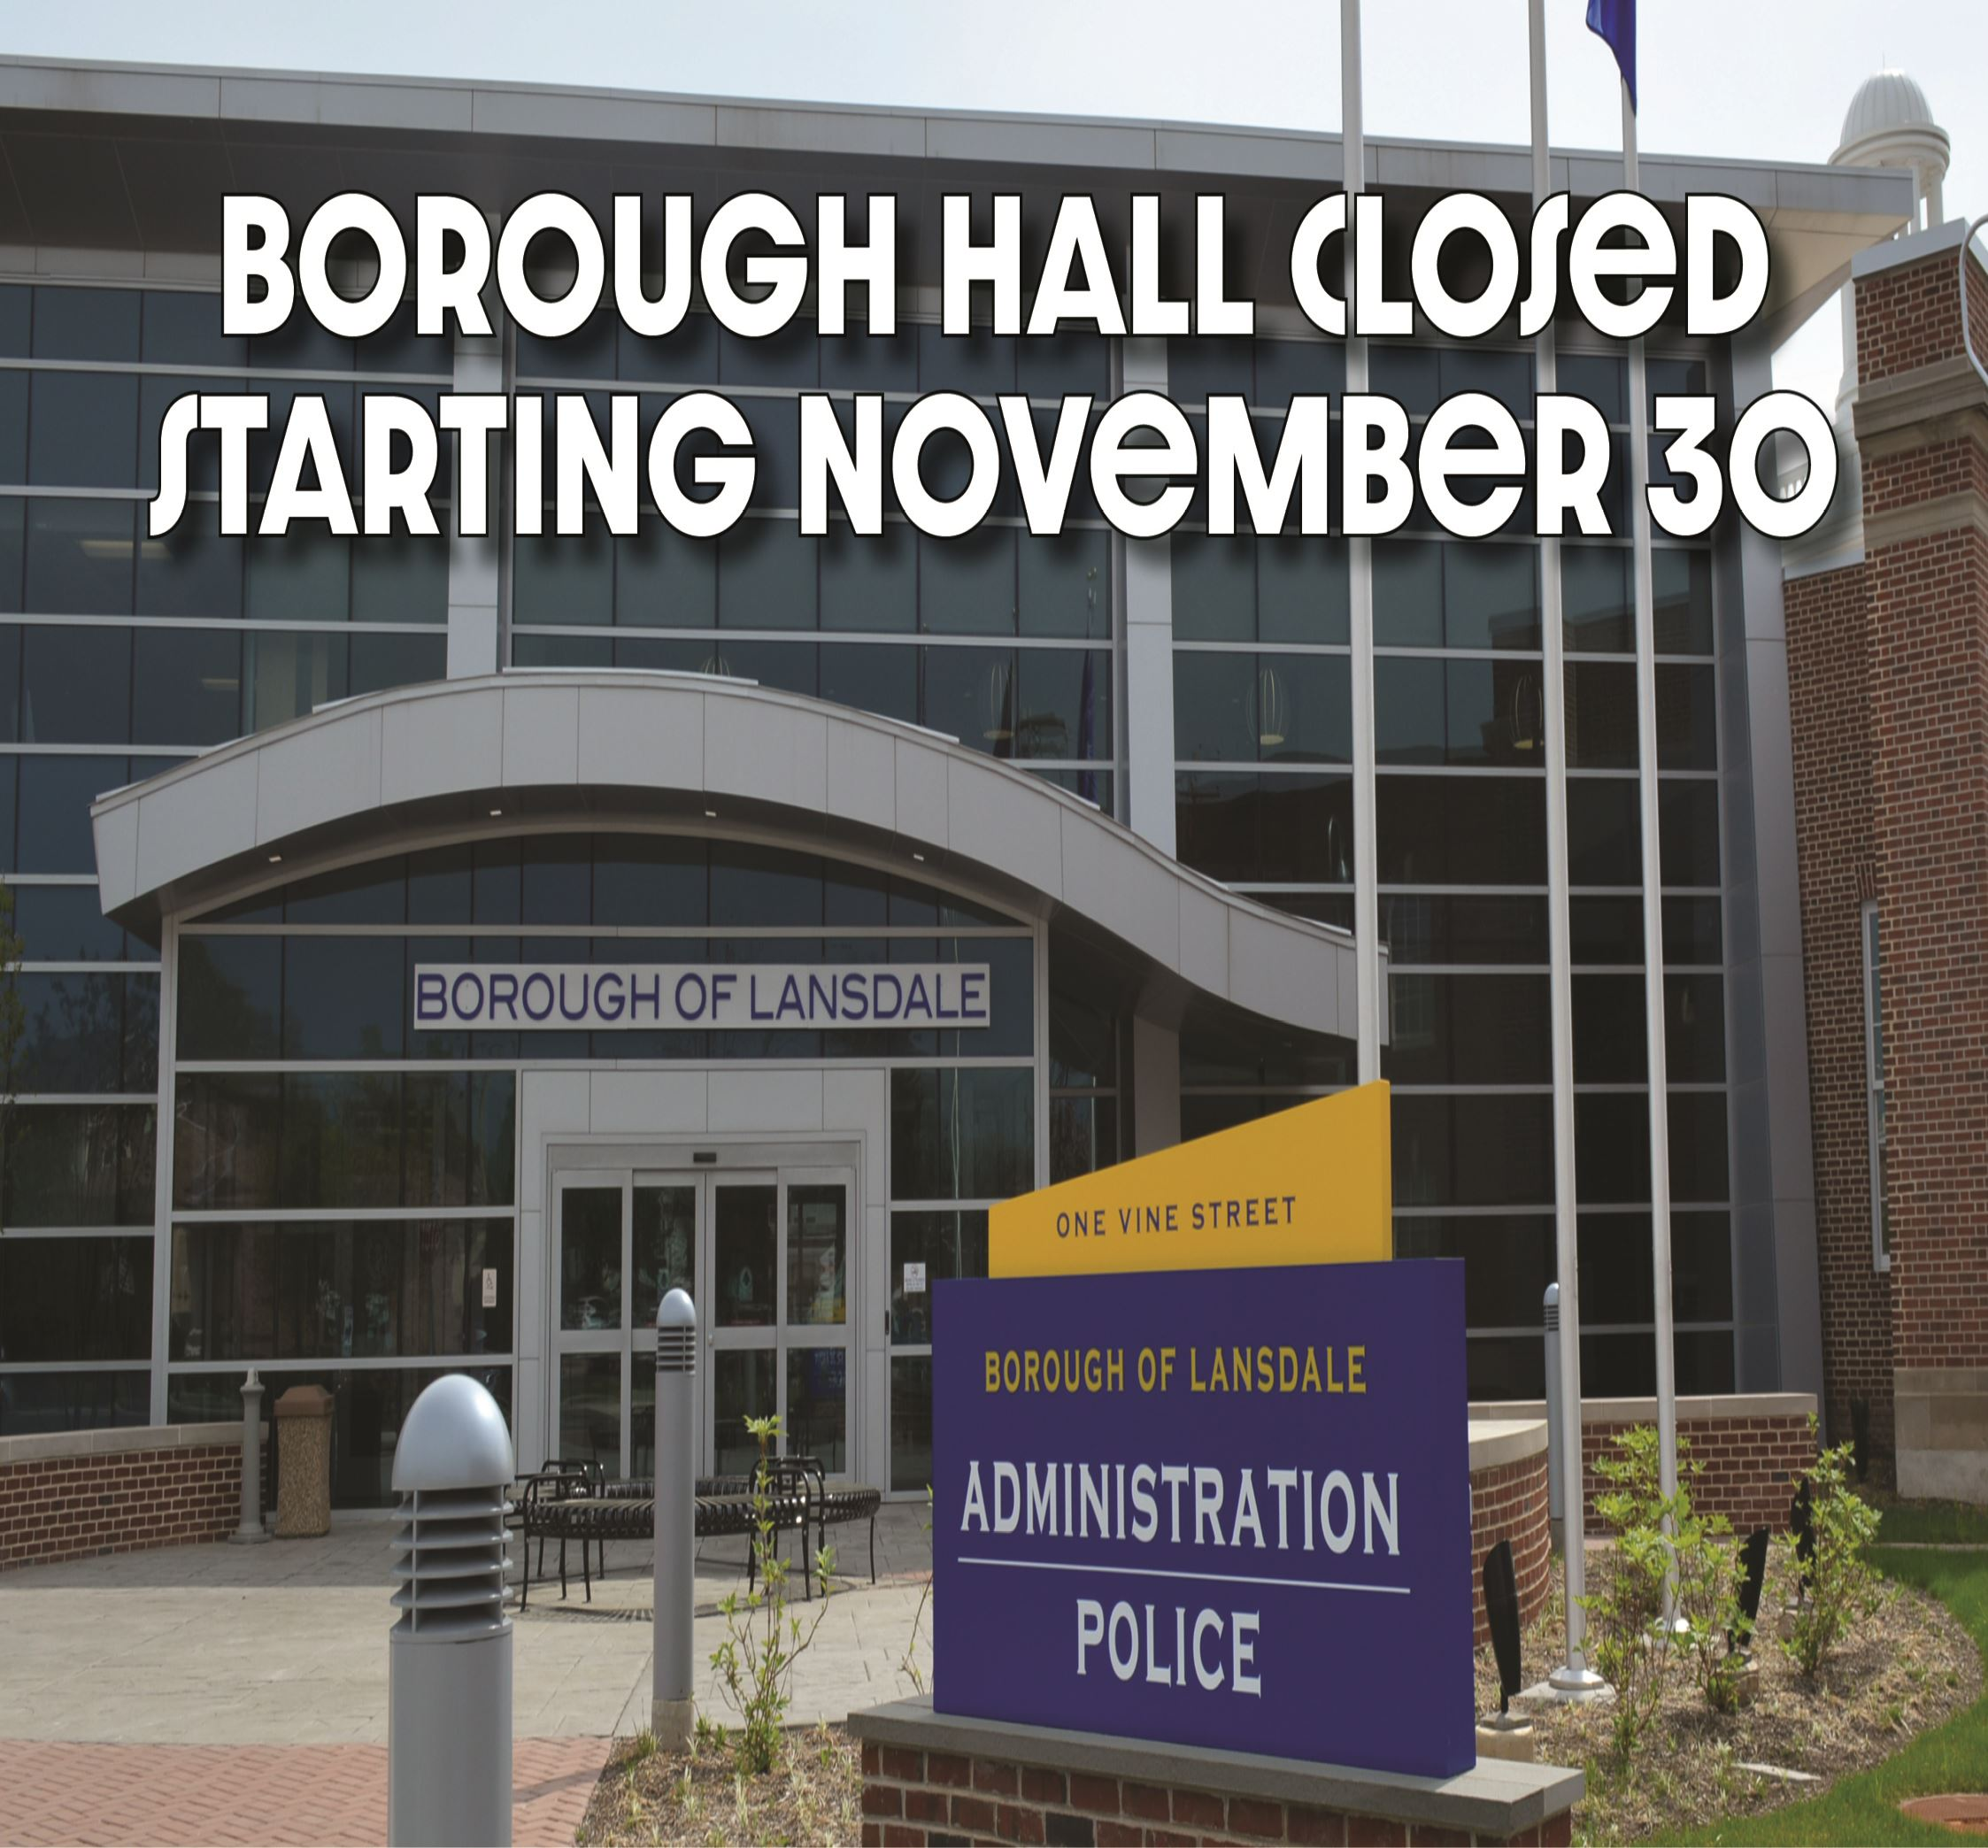 Borough Hall CLosed NOvember 30